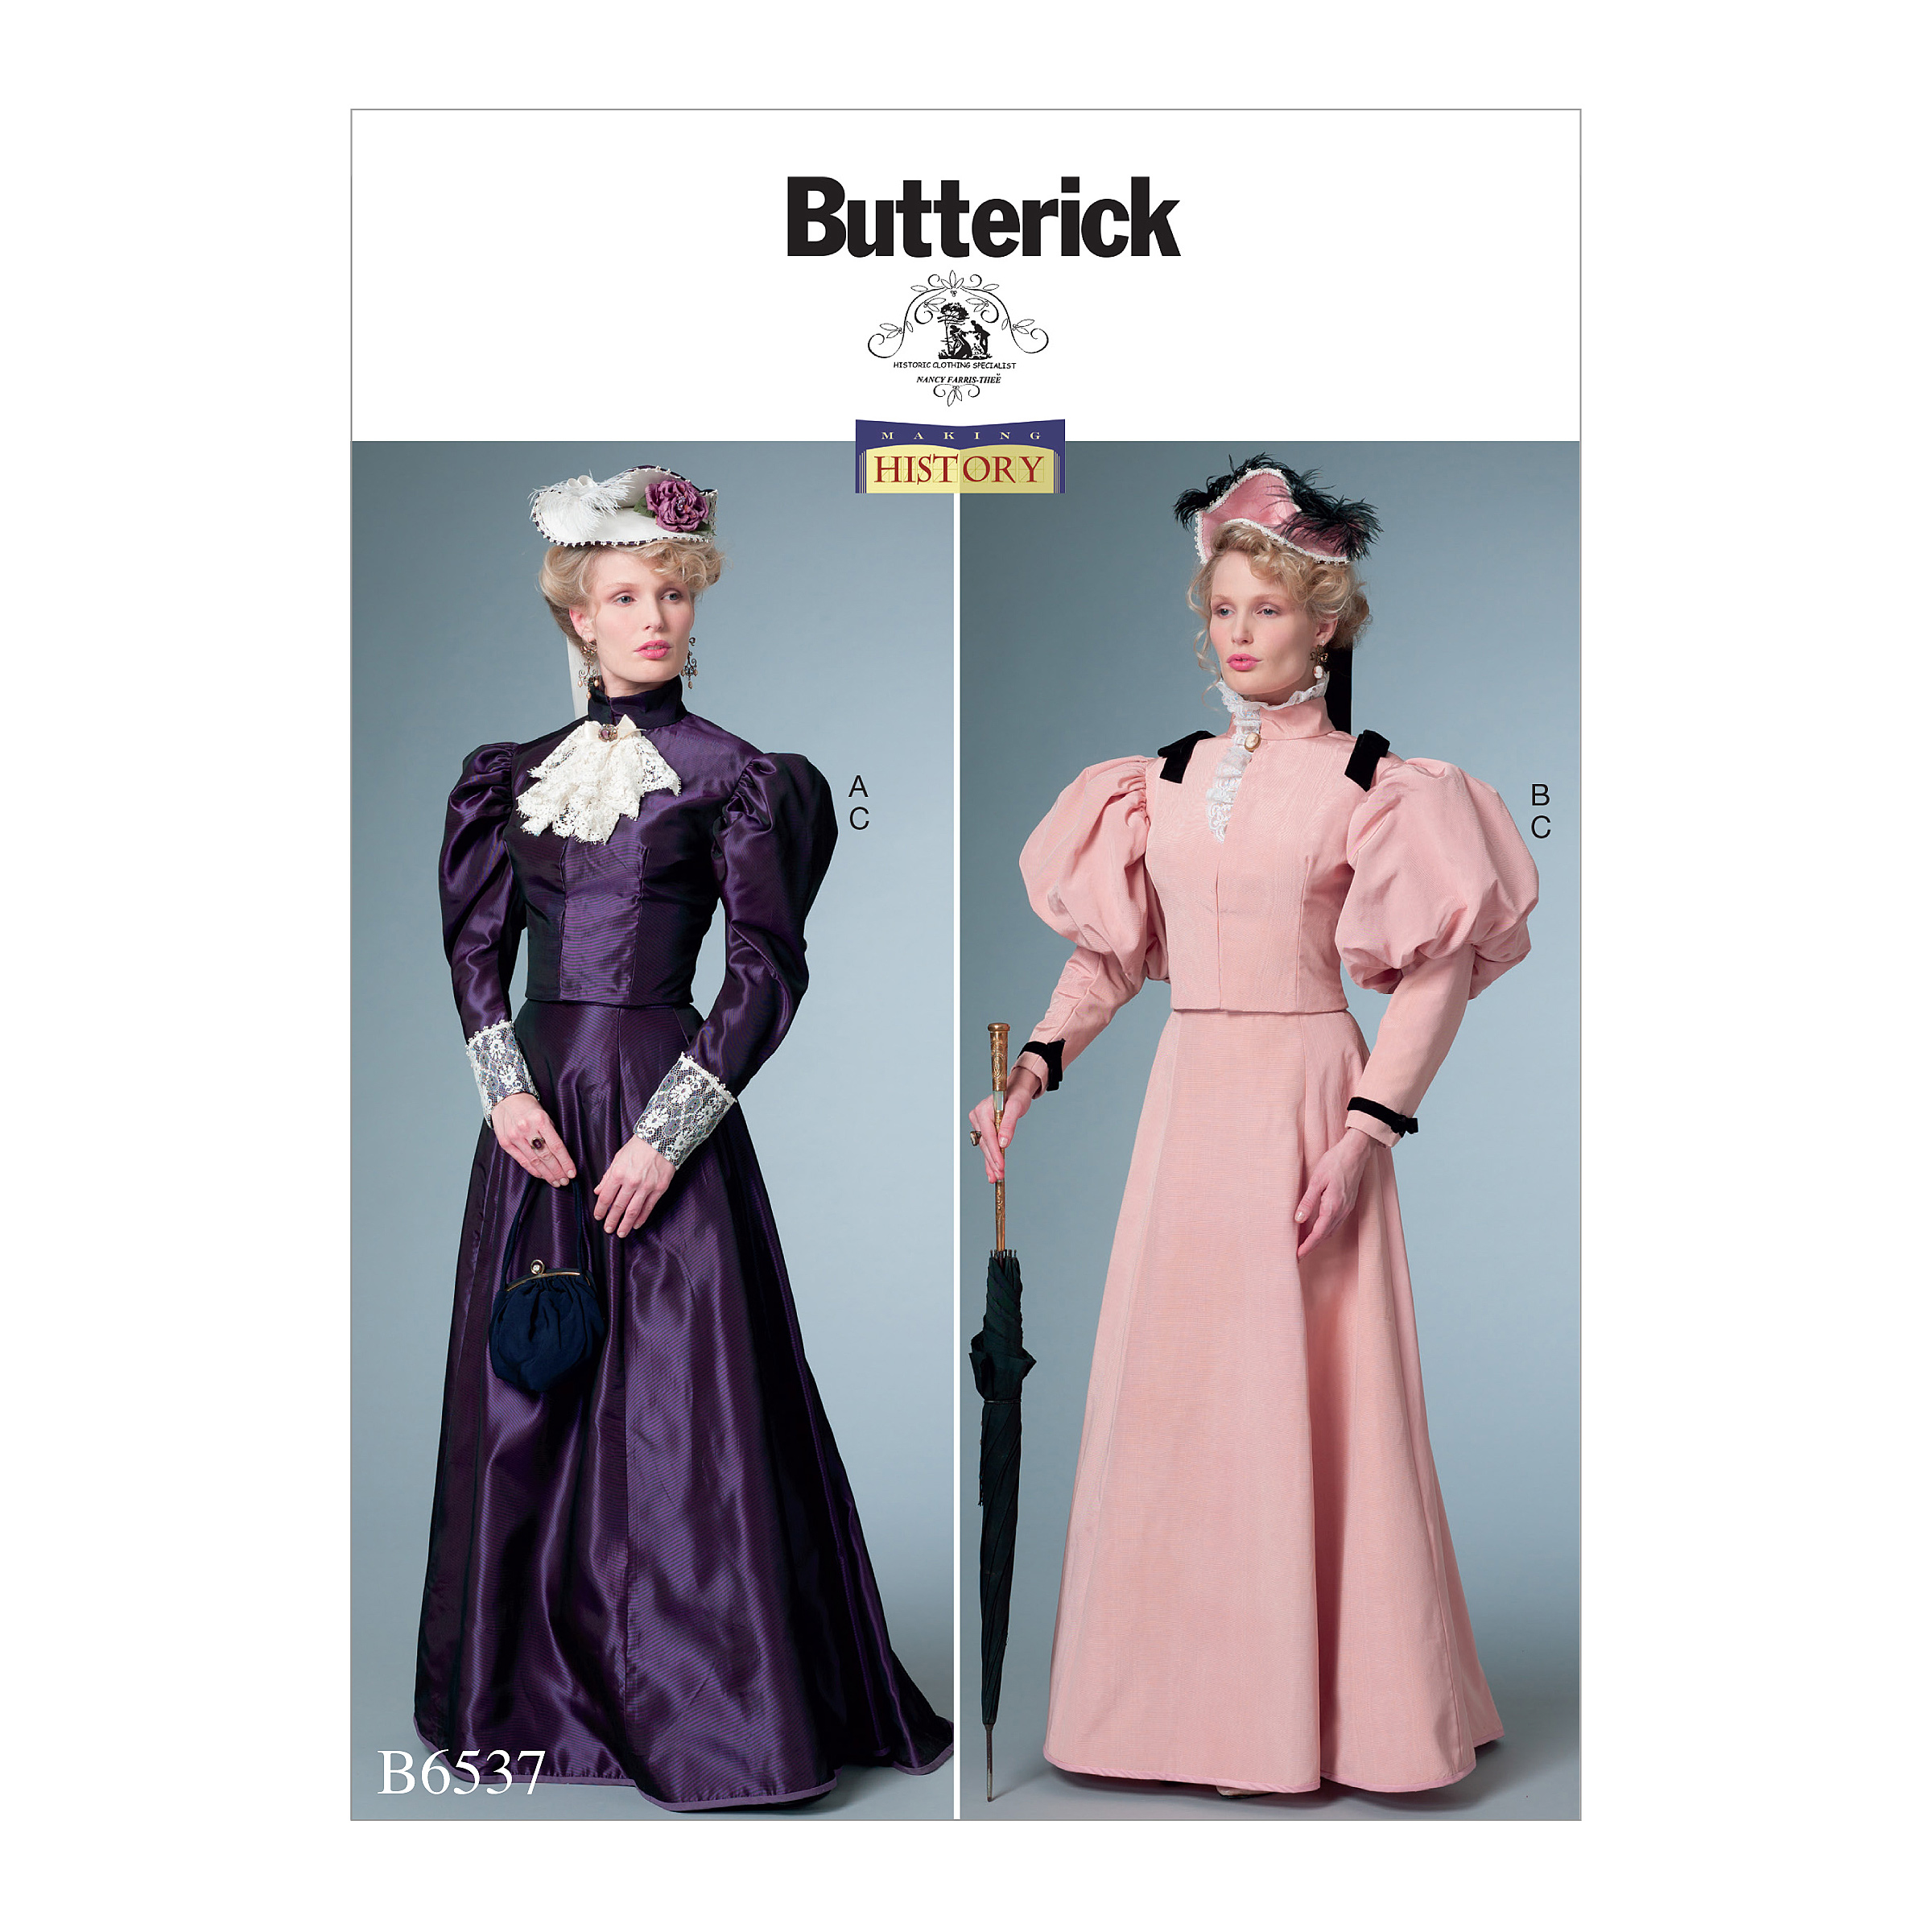 New butterick winter collection dec 2017 121417 have fun sewing these outside the box hemlines there is always a new look to be made with fabric matching colors patterns and textures jeuxipadfo Image collections